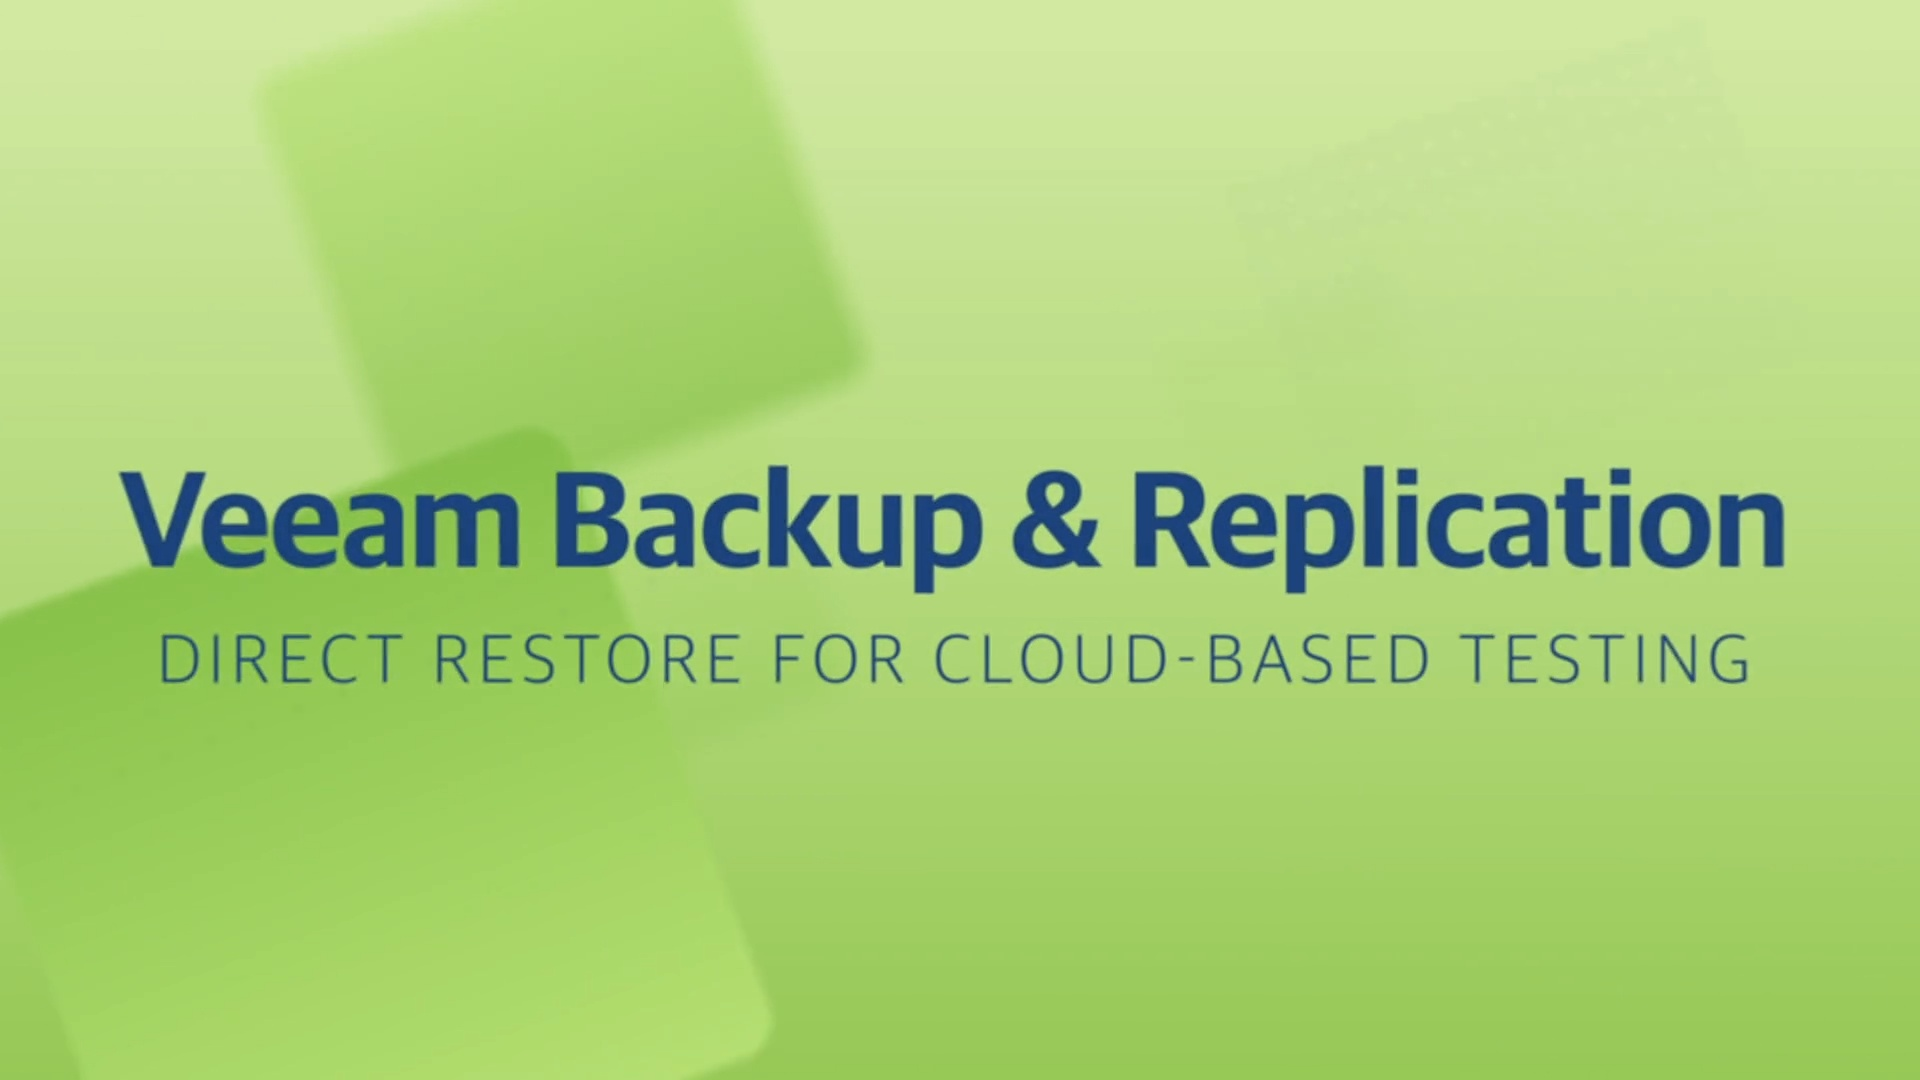 Product launch v11 - VBR - Direct Restore for Cloud-based Testing